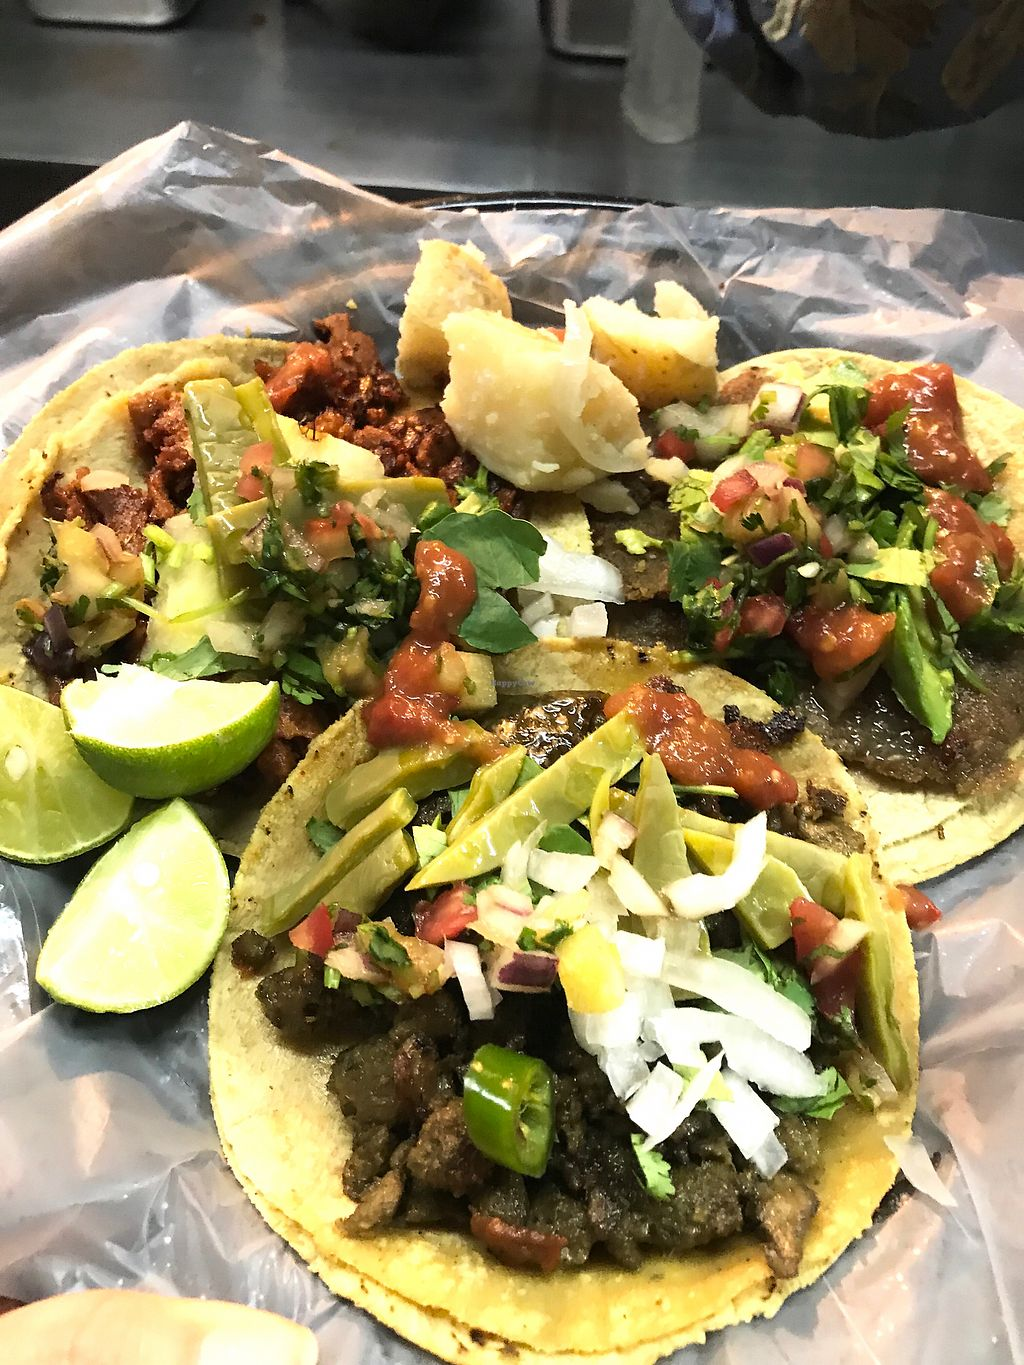 Vegan tacos with toppings! at Por Siempre Vegana Taqueria - Food Stall in  Mexico City 351871c0e5ee0